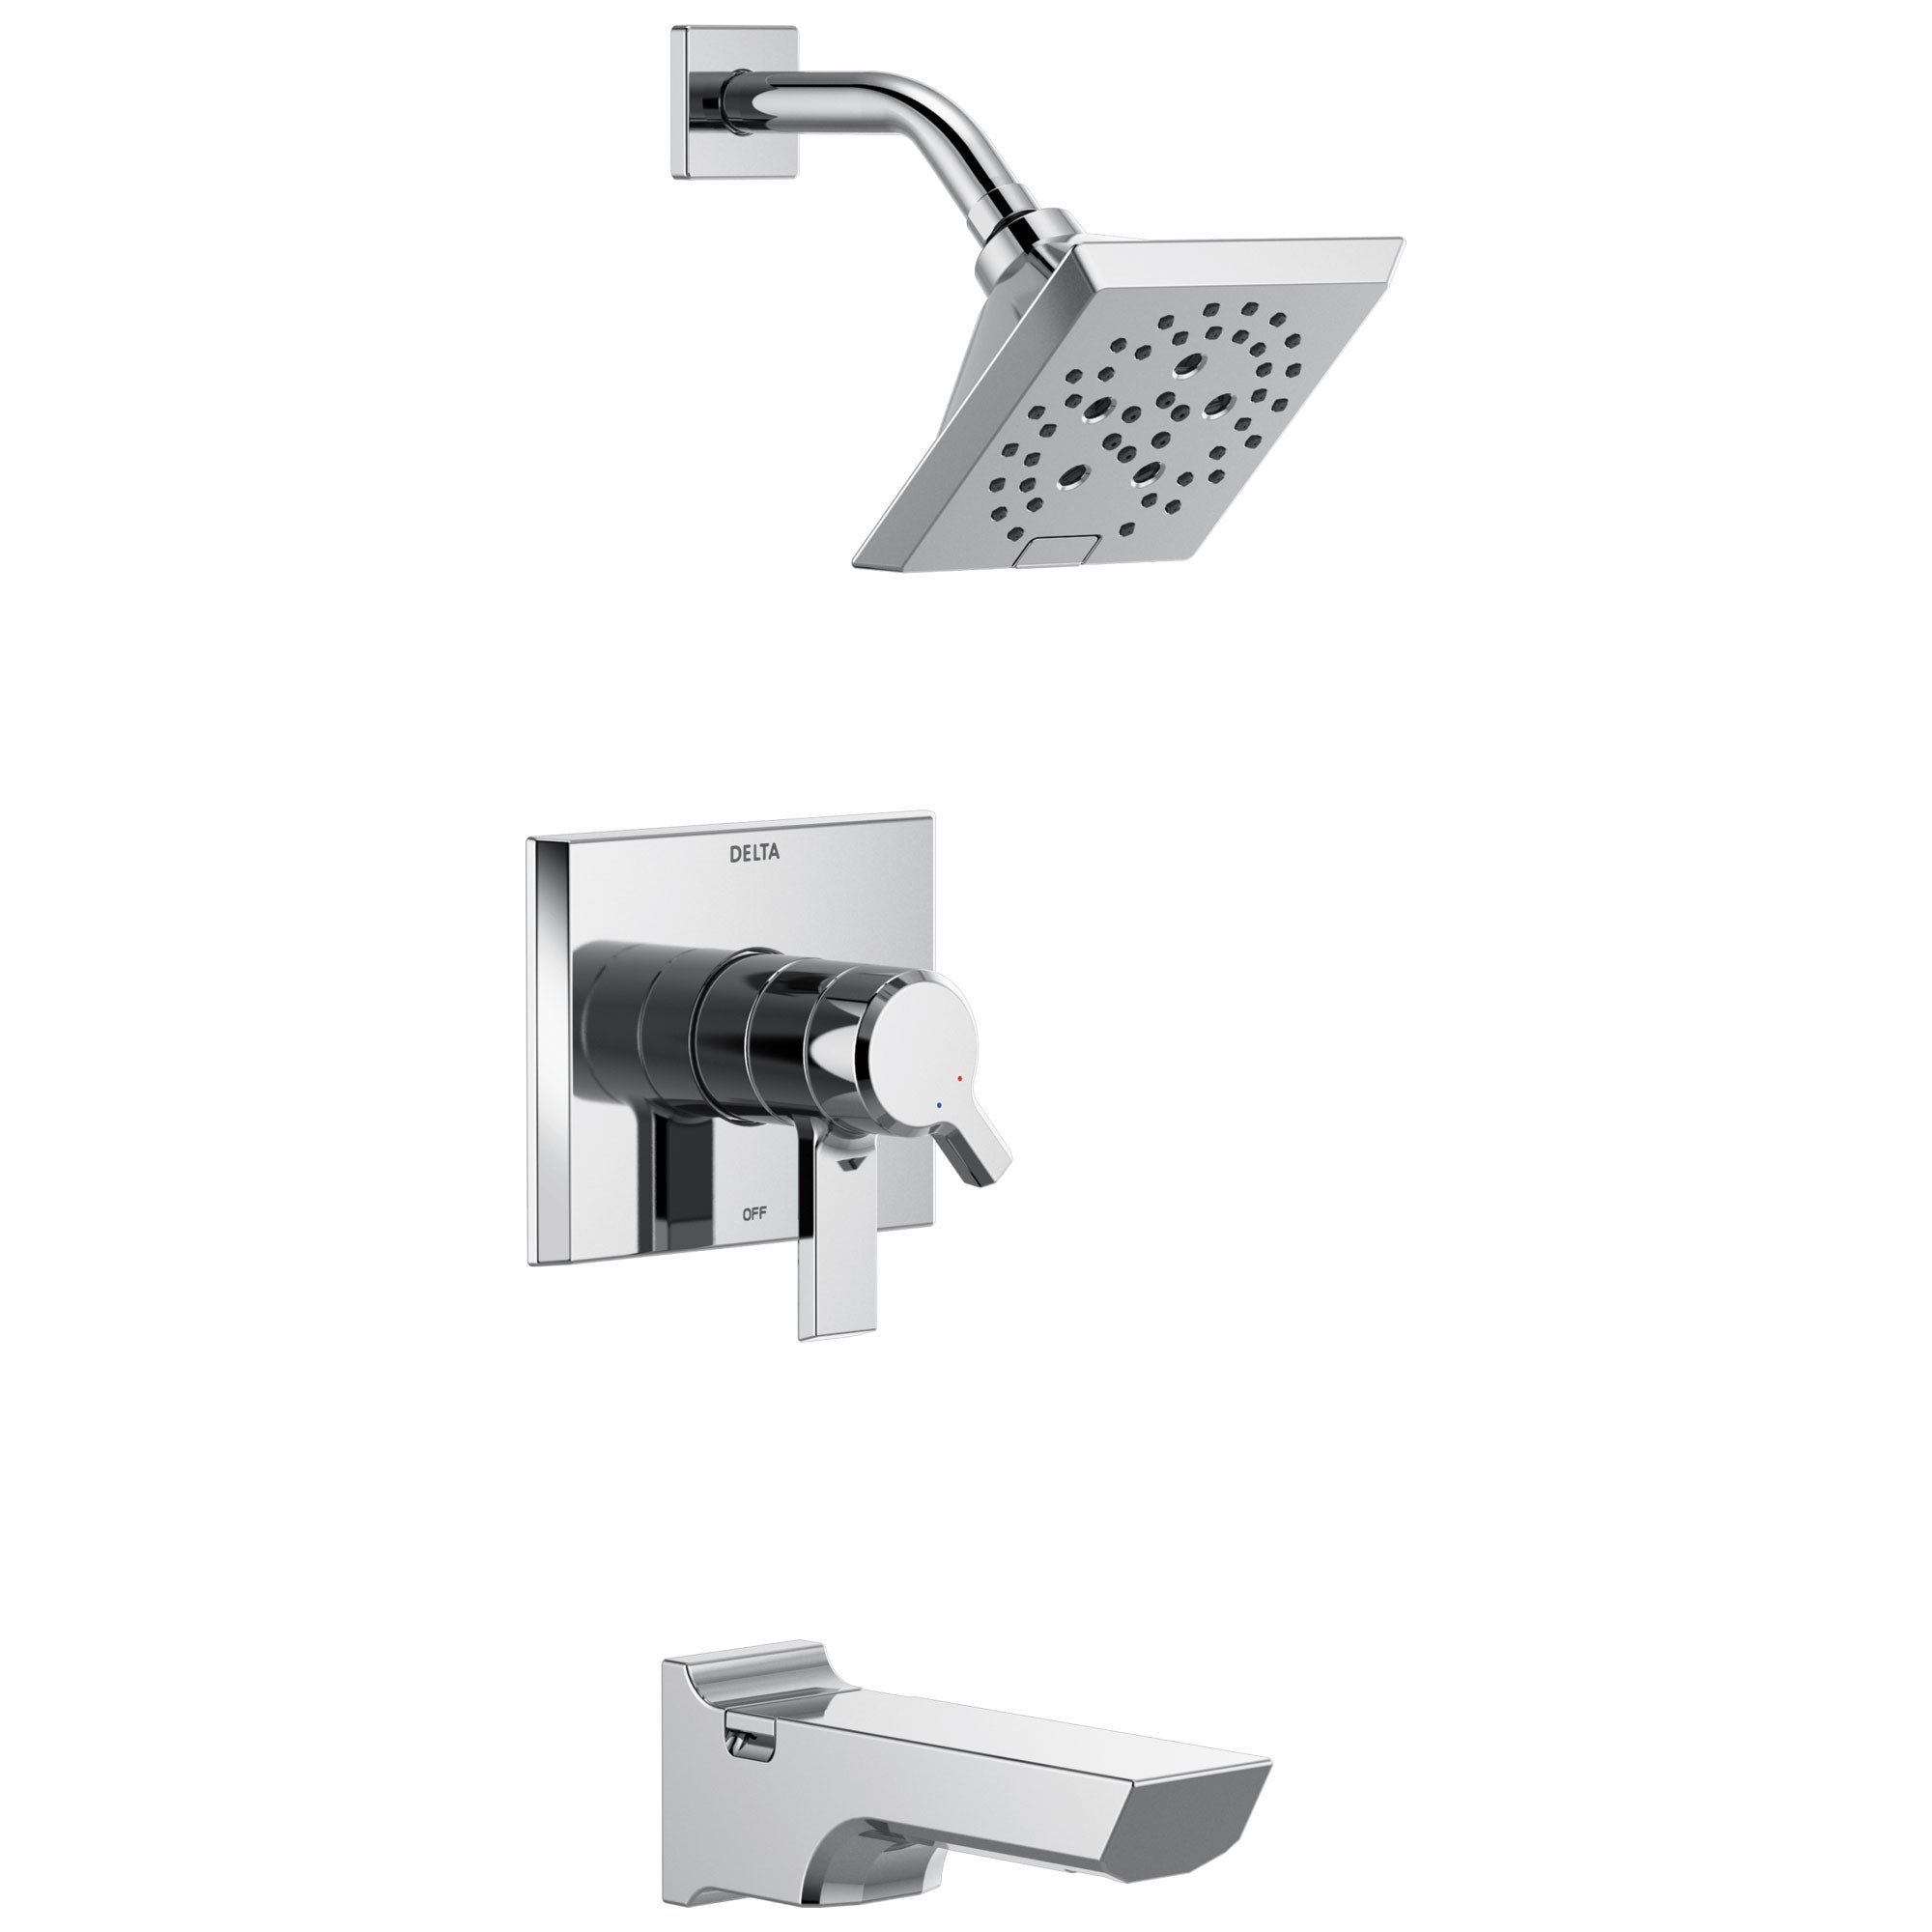 Delta Pivotal Chrome Finish Monitor 17 Series H2Okinetic Tub and Shower Combination Faucet Trim Kit (Requires Valve) DT17499